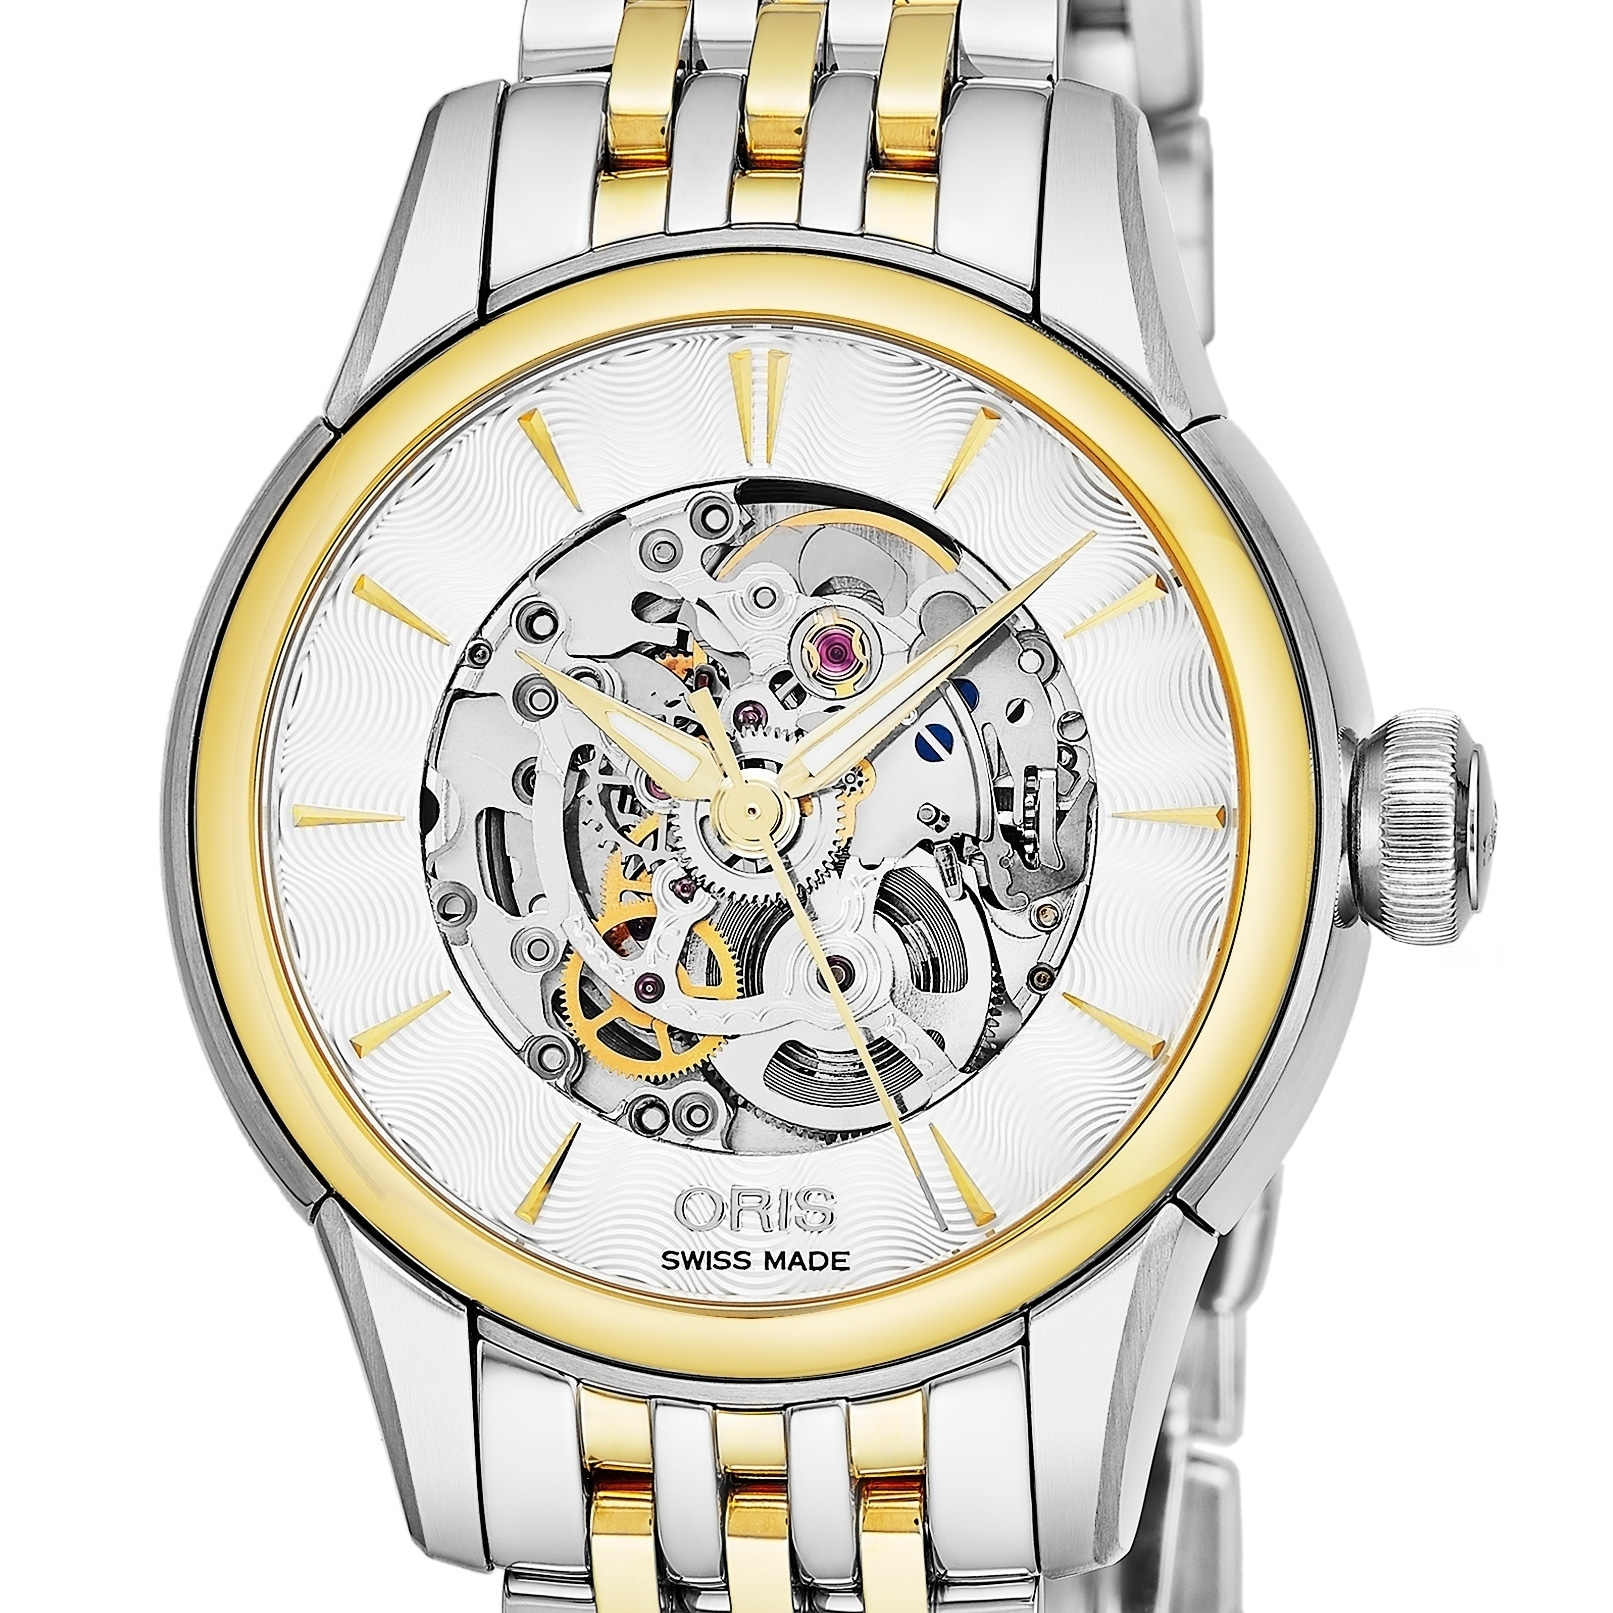 1dc996ca7 Shop Oris Women's 01 560 7687 4351-07 8 14 78 'Artelier' Silver Skeleton  Dial Two Tone Stainless Steel Swiss Automatic Watch - Free Shipping Today  ...